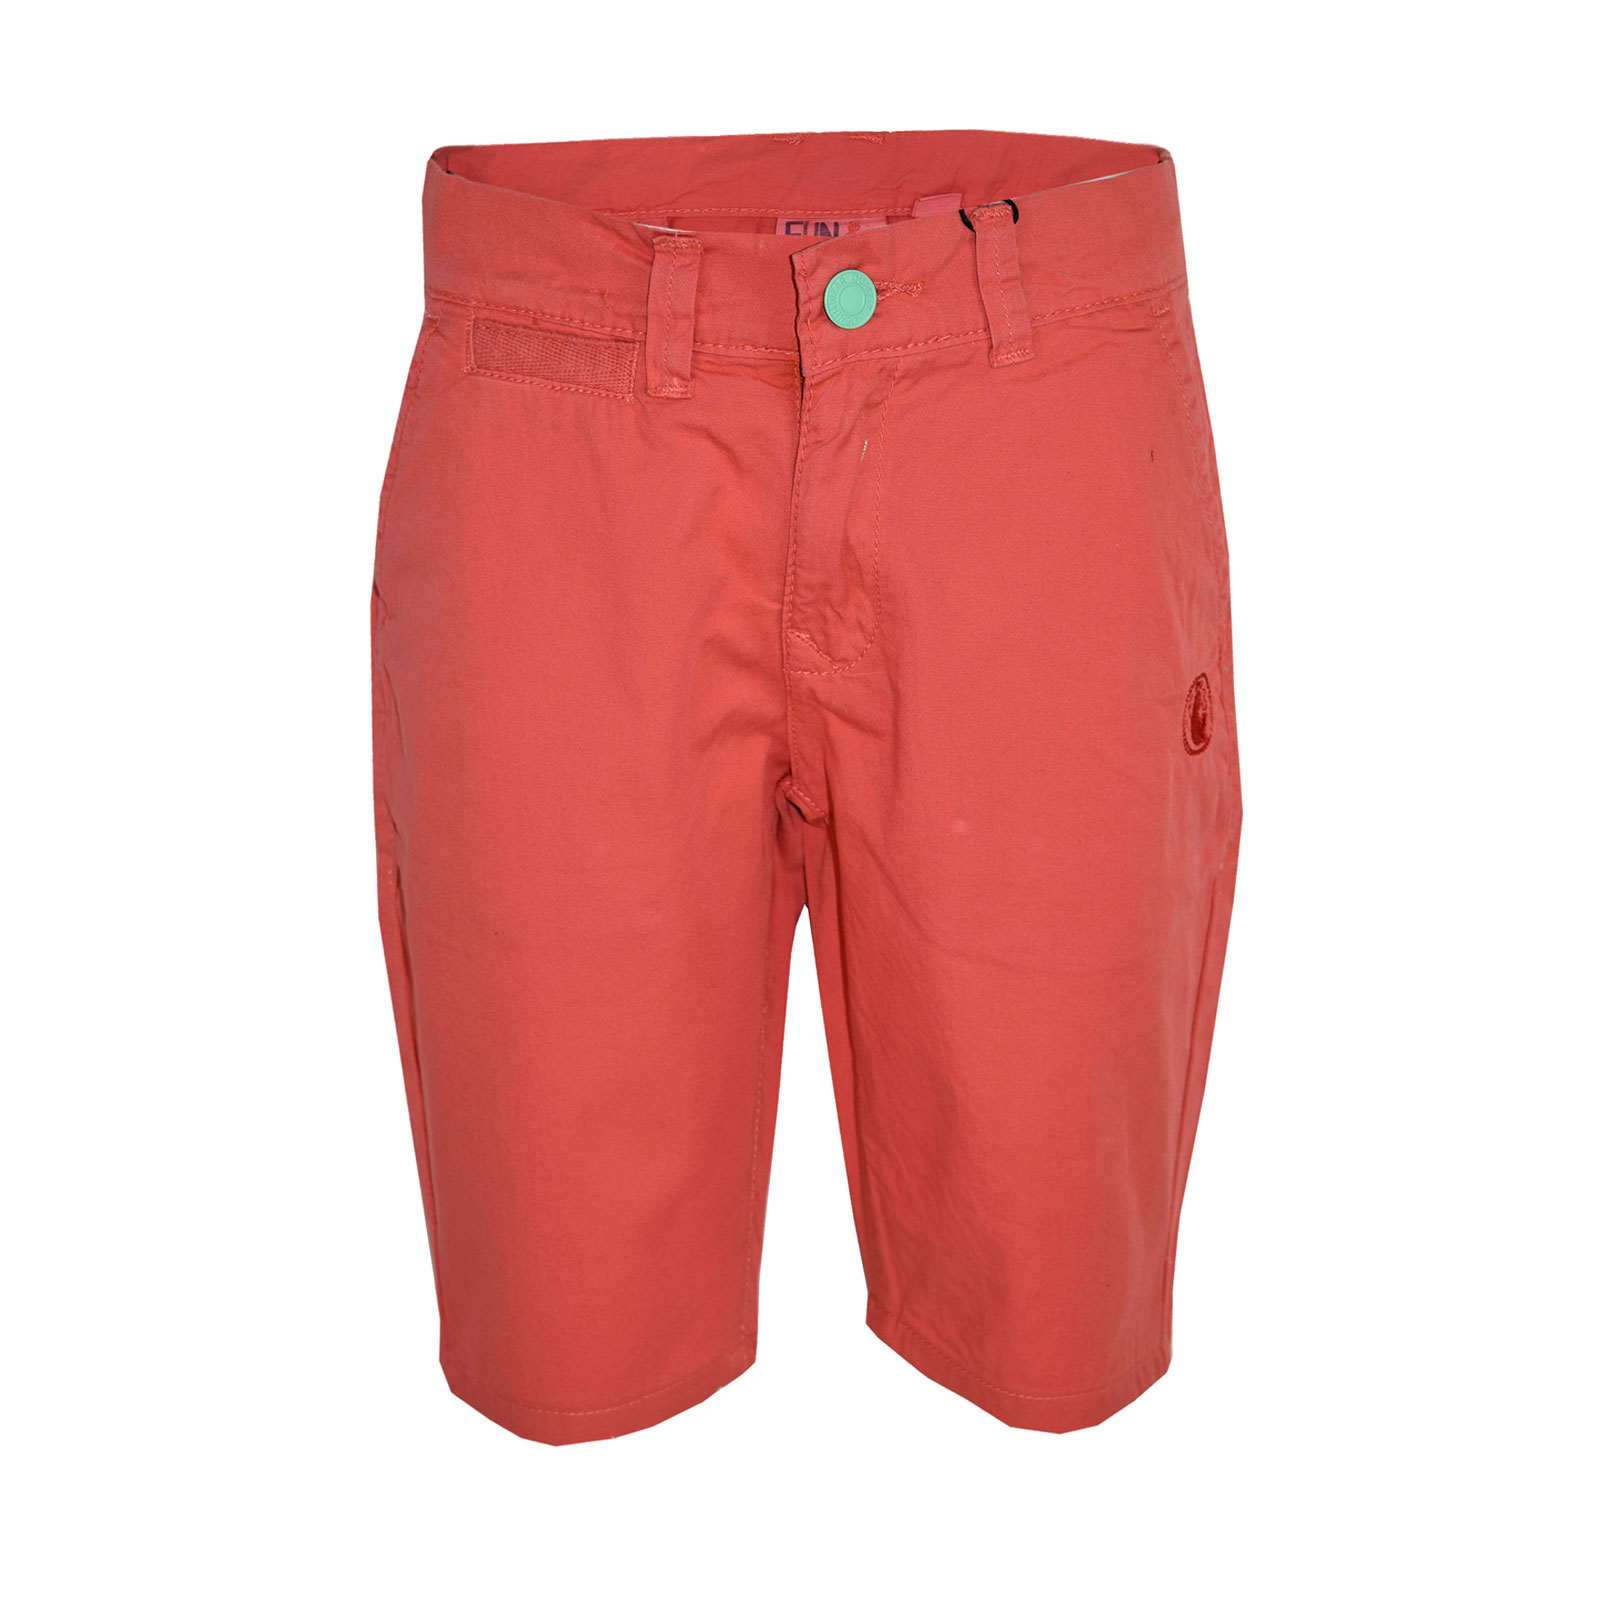 Matalan's stylish collection of boys' trousers and chinos are perfect, for boys of all ages. Browse the range today, and click and collect in store.